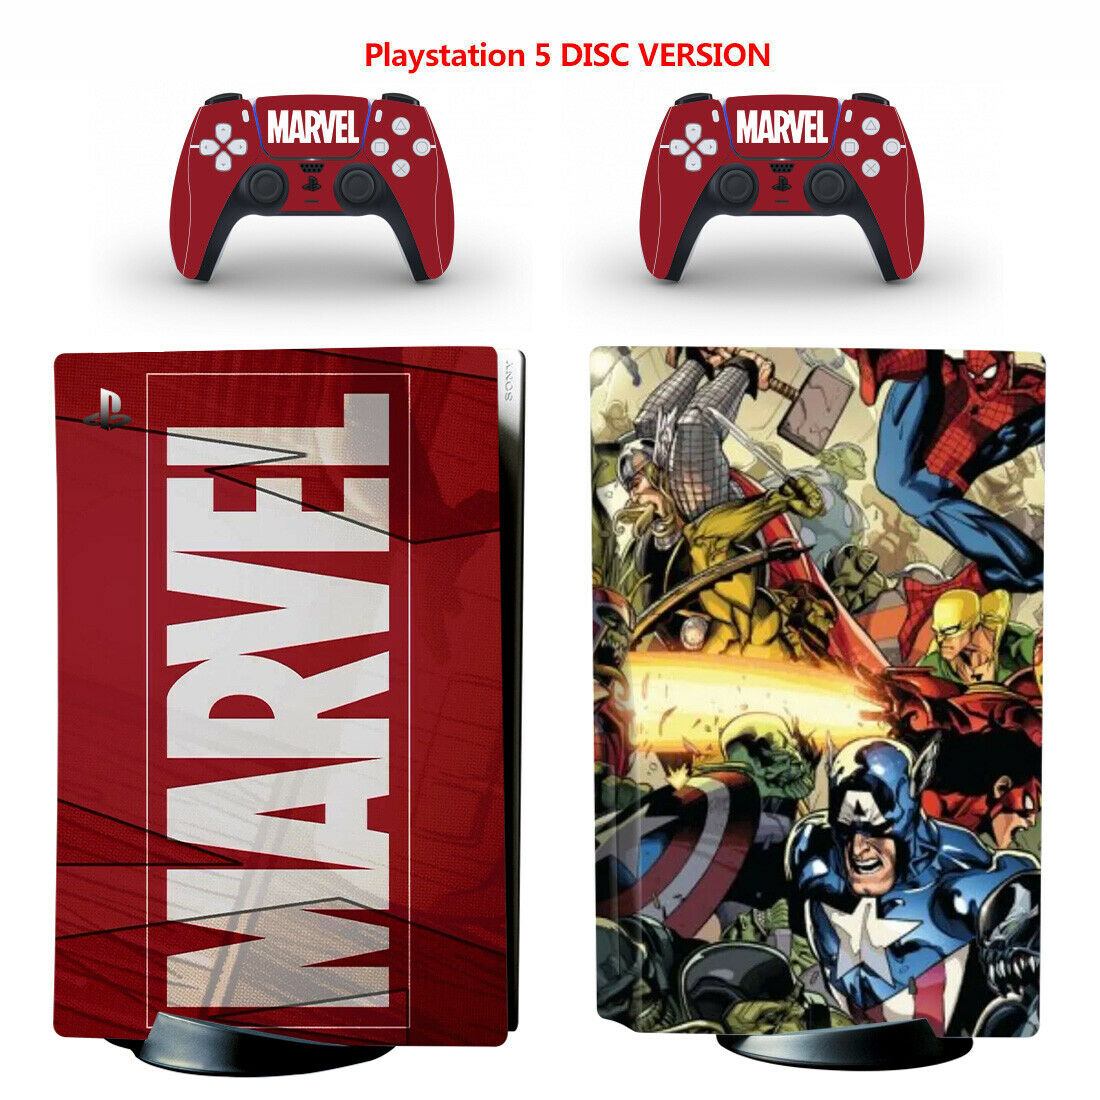 Marvel's The Avengers Vinyl Skin Sticker for PS5 Console Controller Disc Version